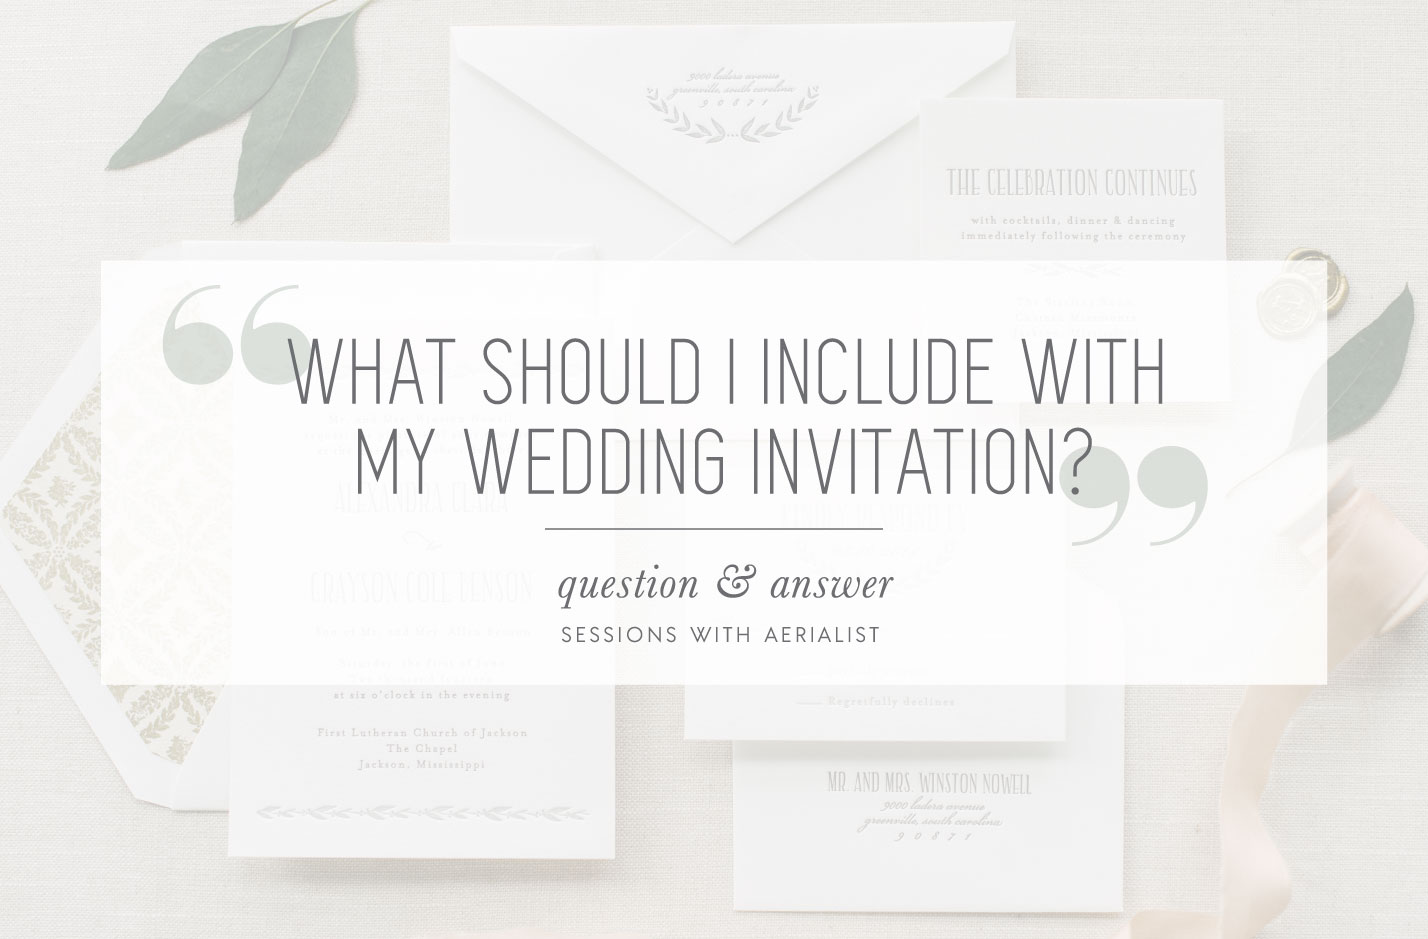 What To Include With My Wedding Invitation